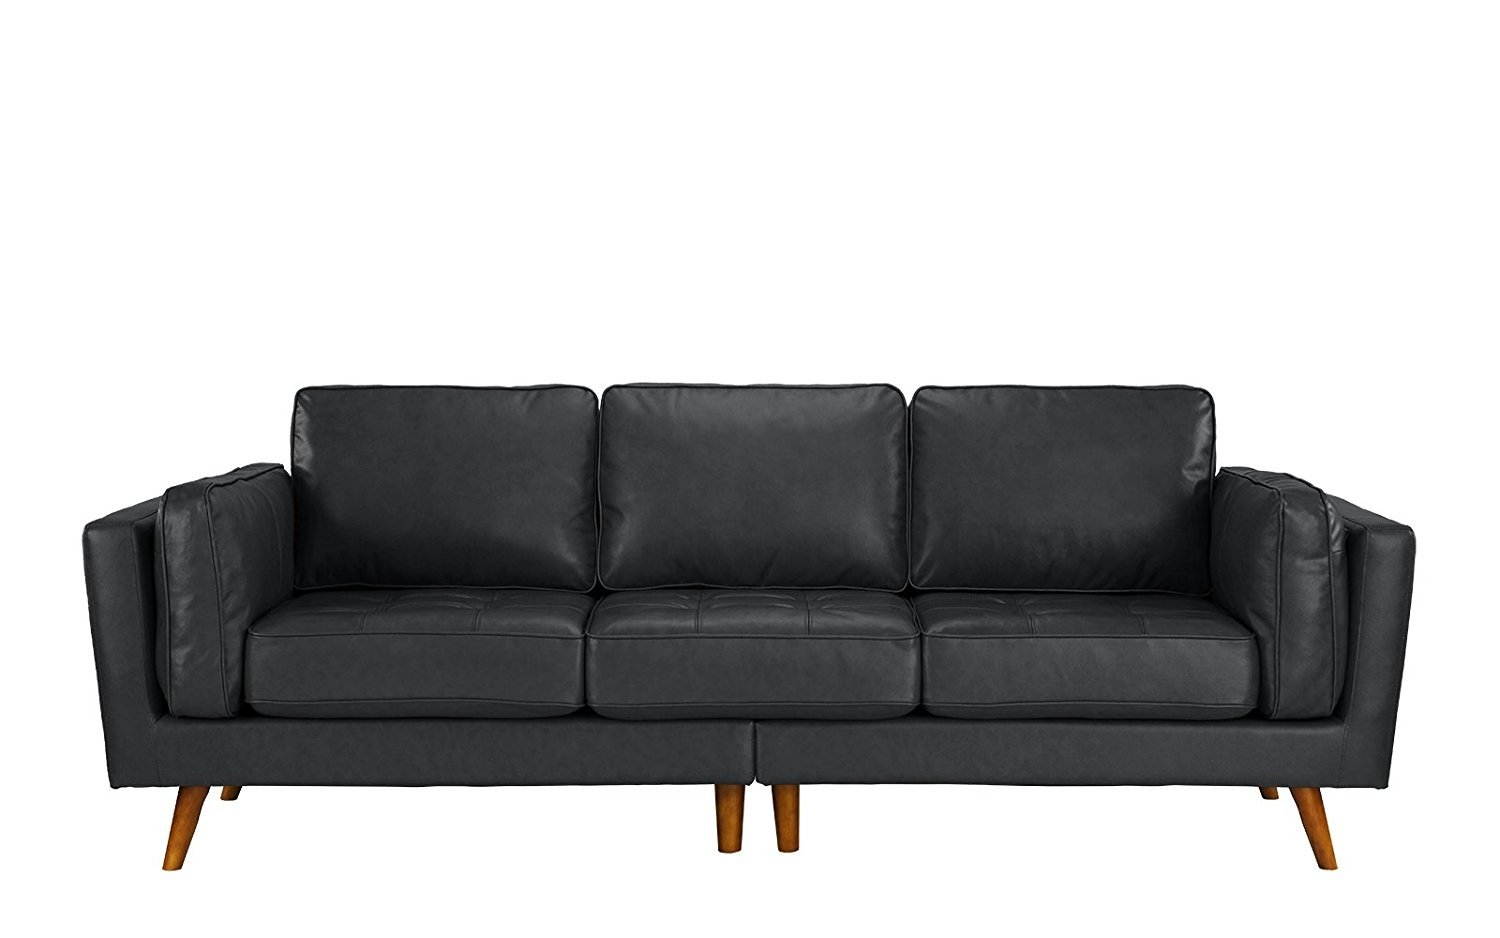 Classic Mid Century Modern Tufted Real Leather Sofa W Wooden Legs